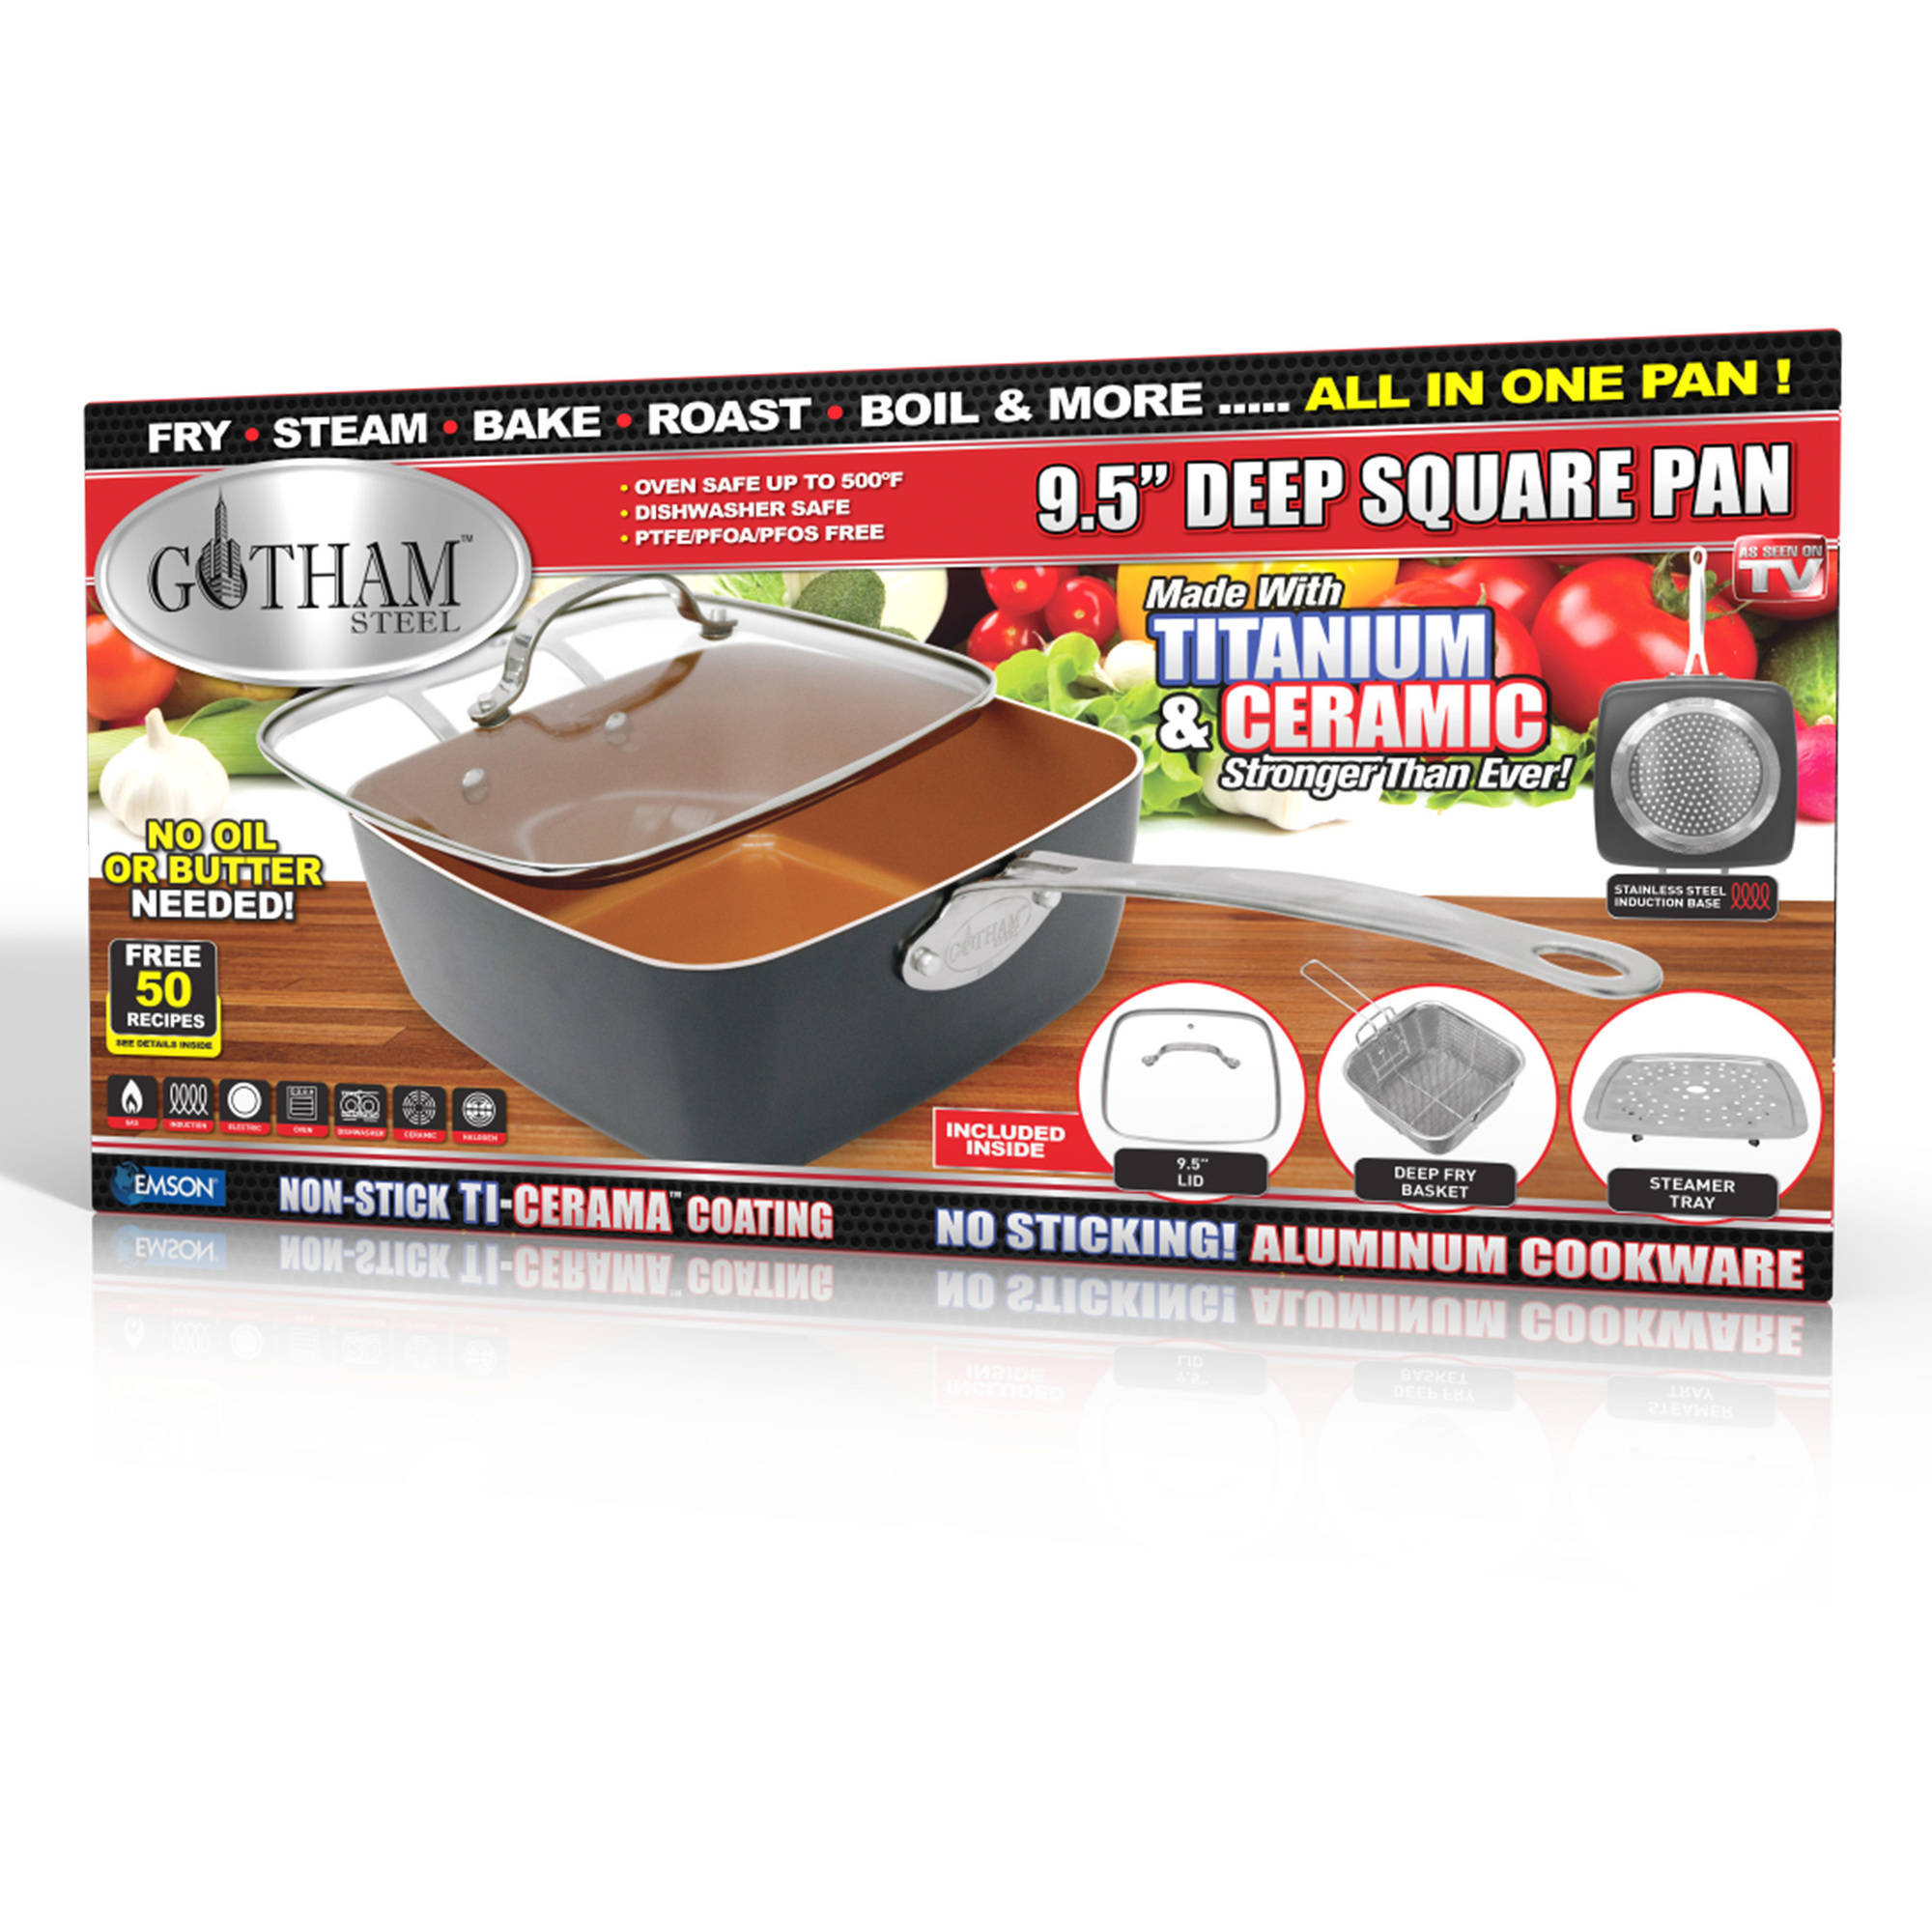 "Gotham Steel Ceramic and Titanium Nonstick 9.5"" Deep Square Pan"